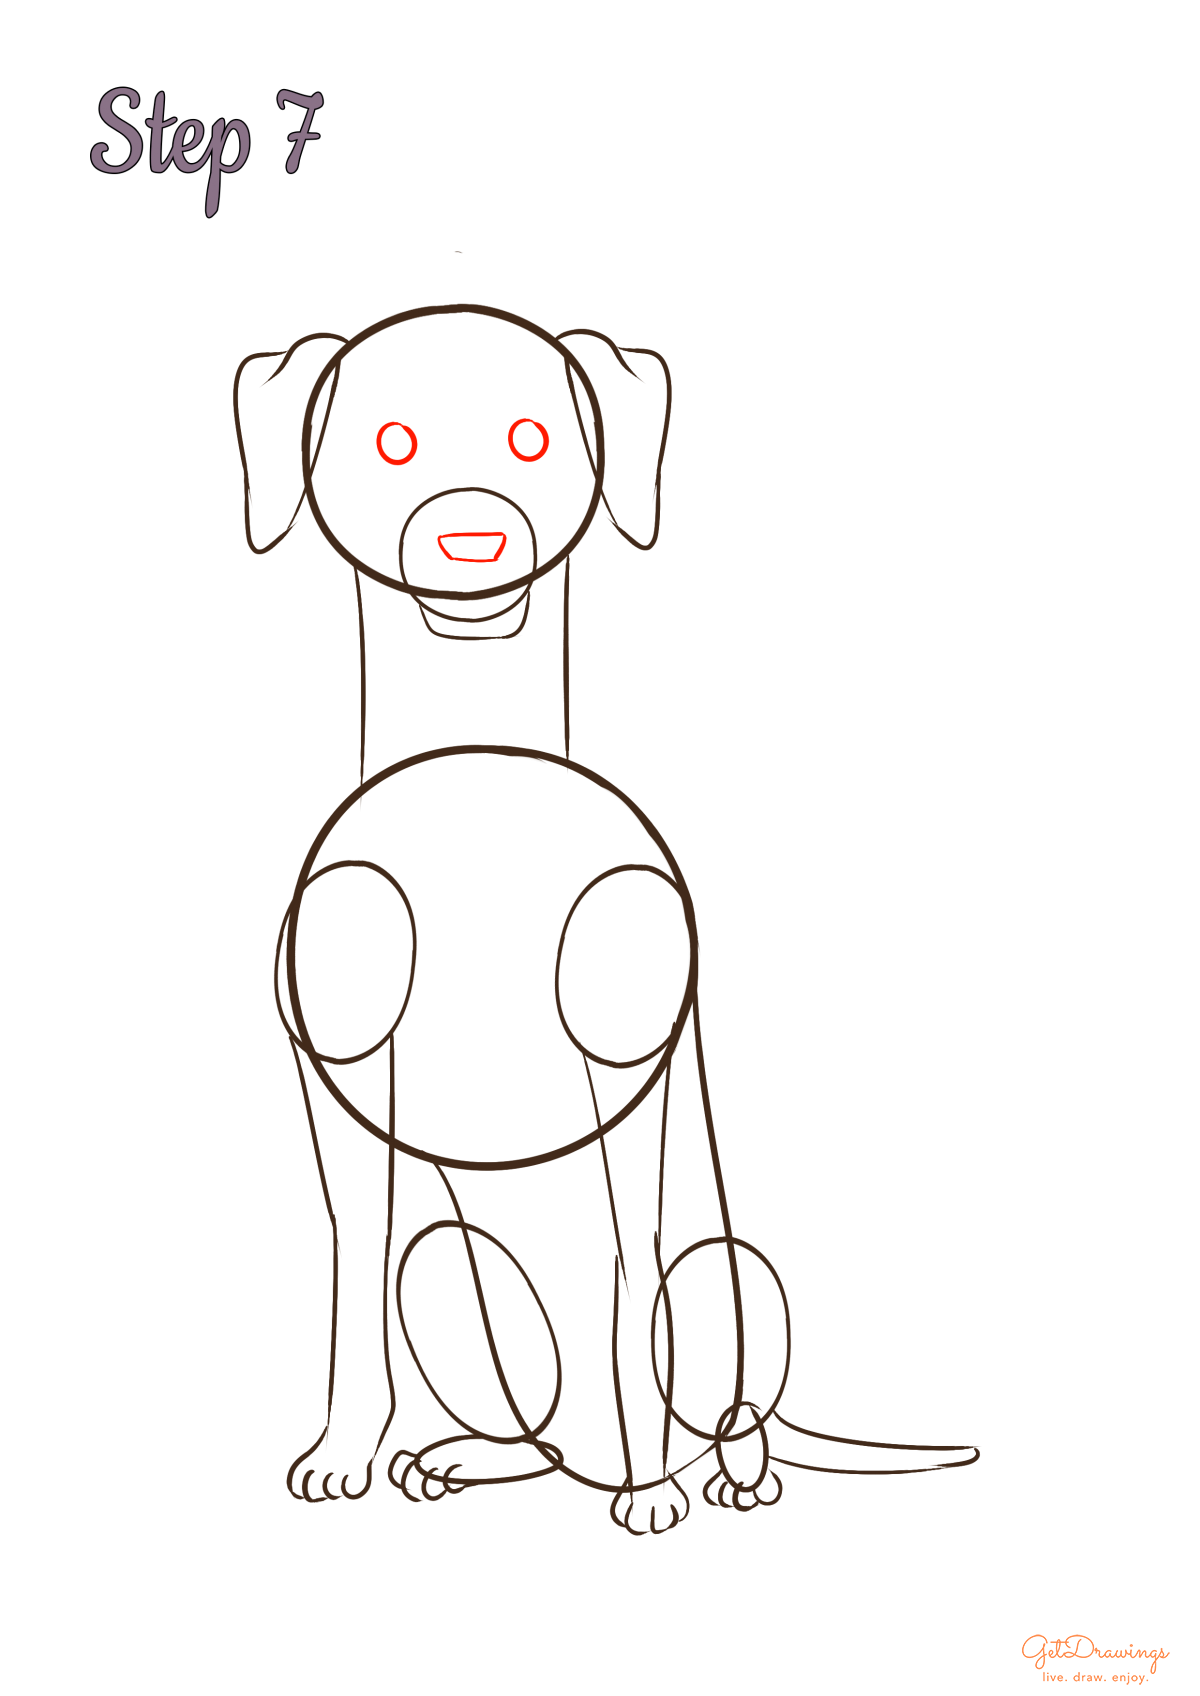 How to draw a Weimaraner dog?